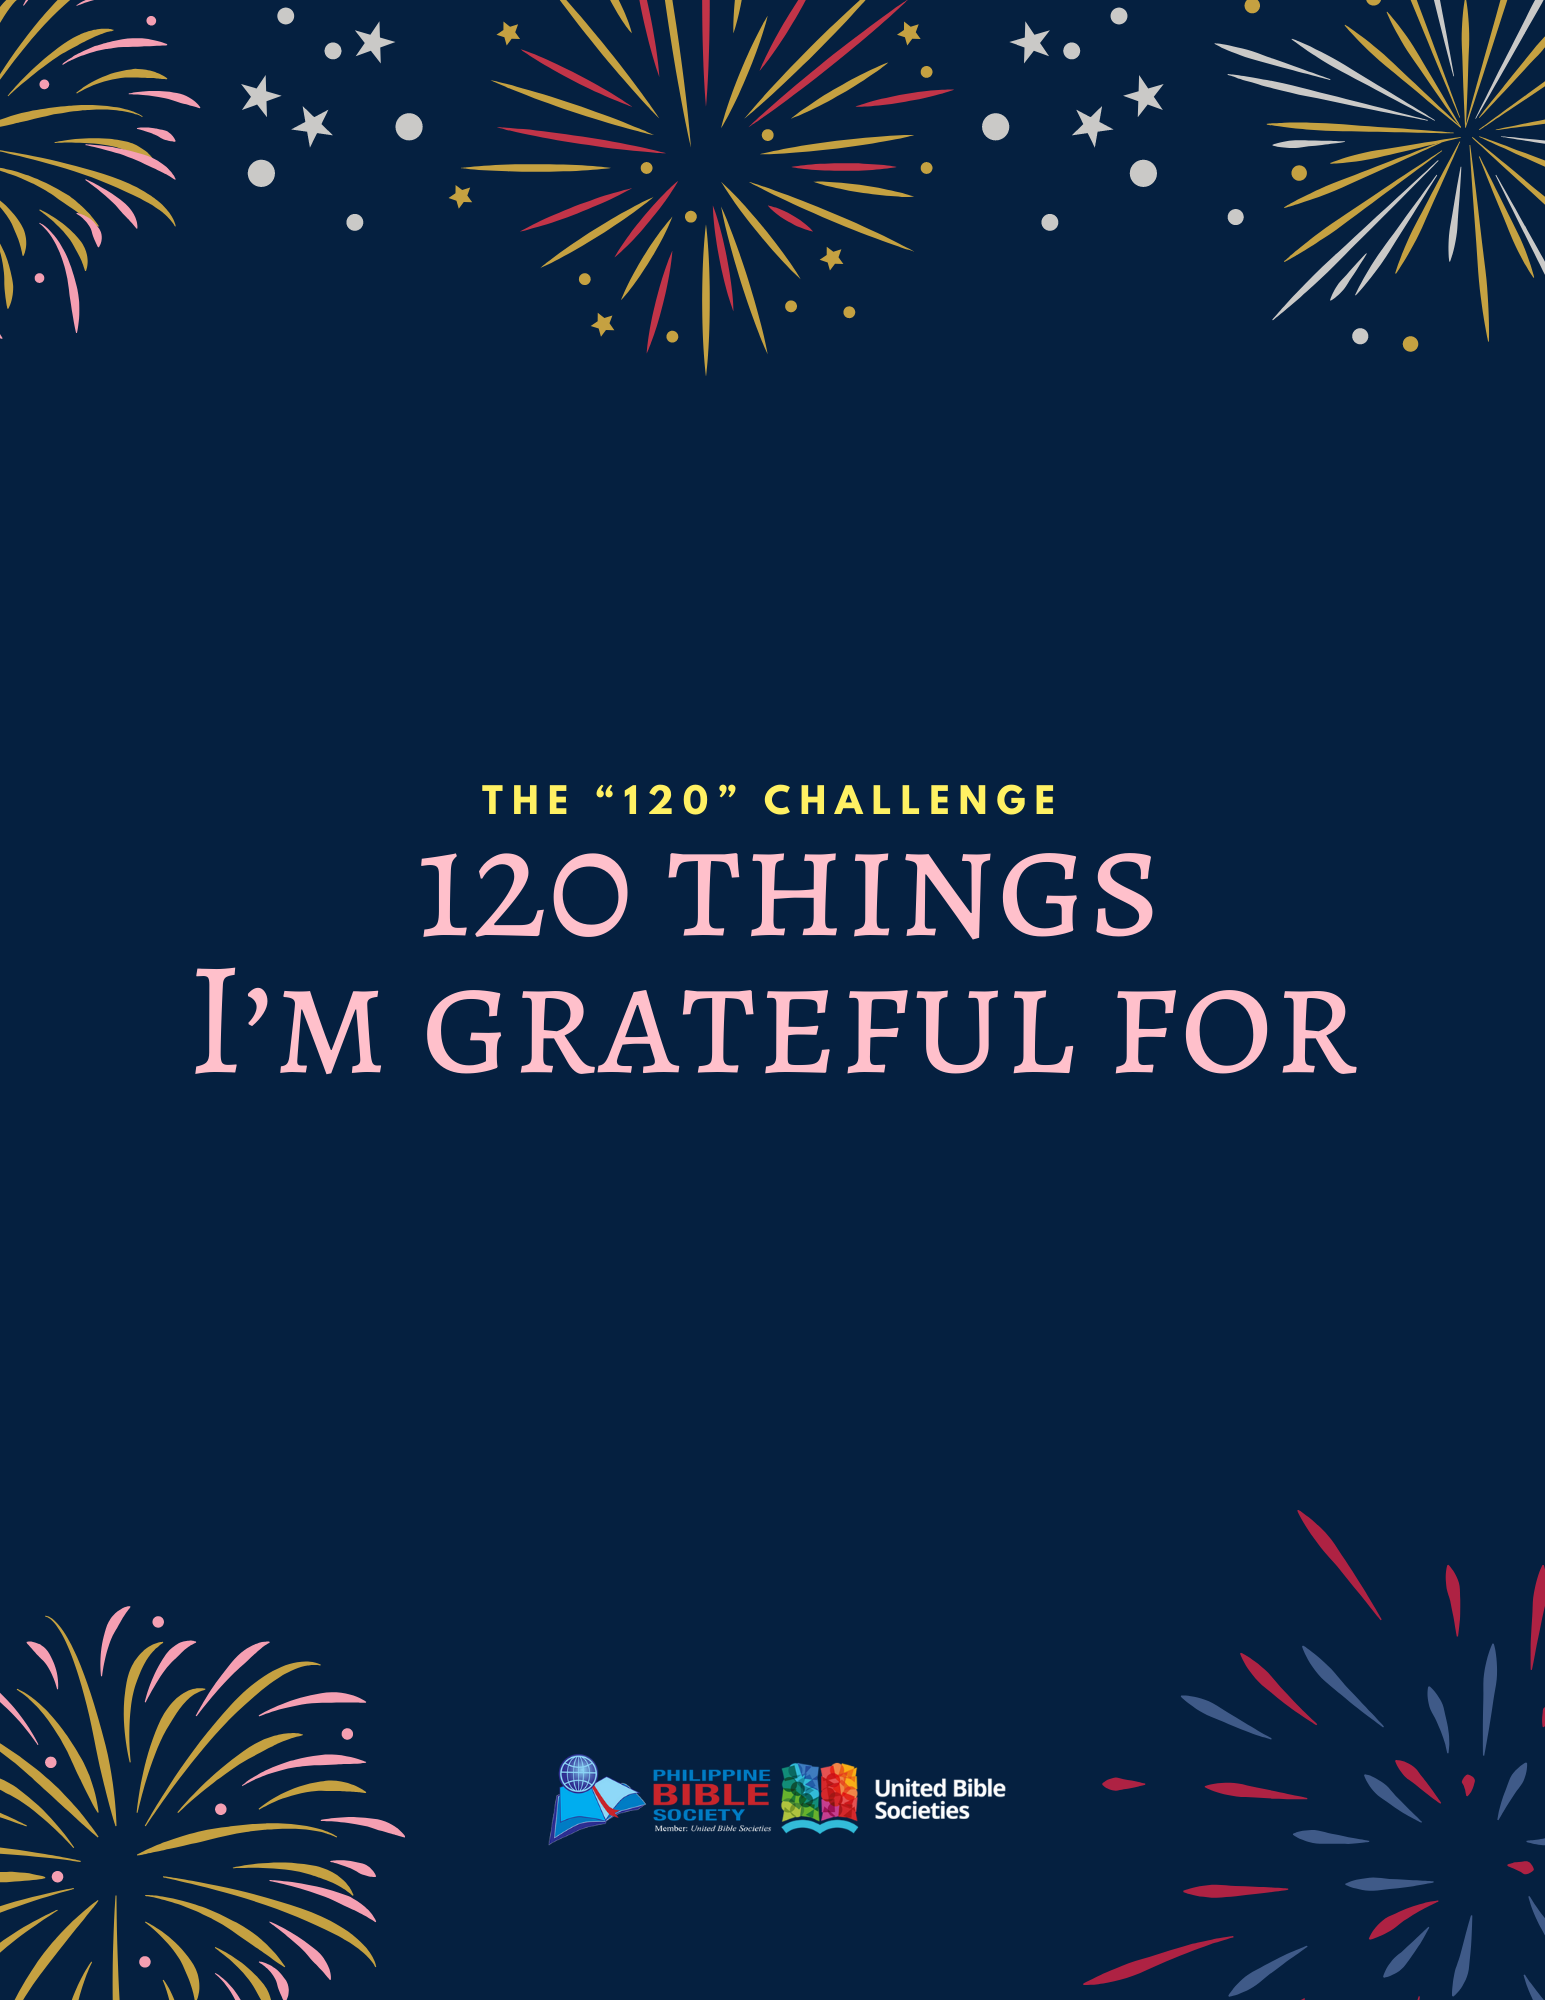 120 things I'm grateful for